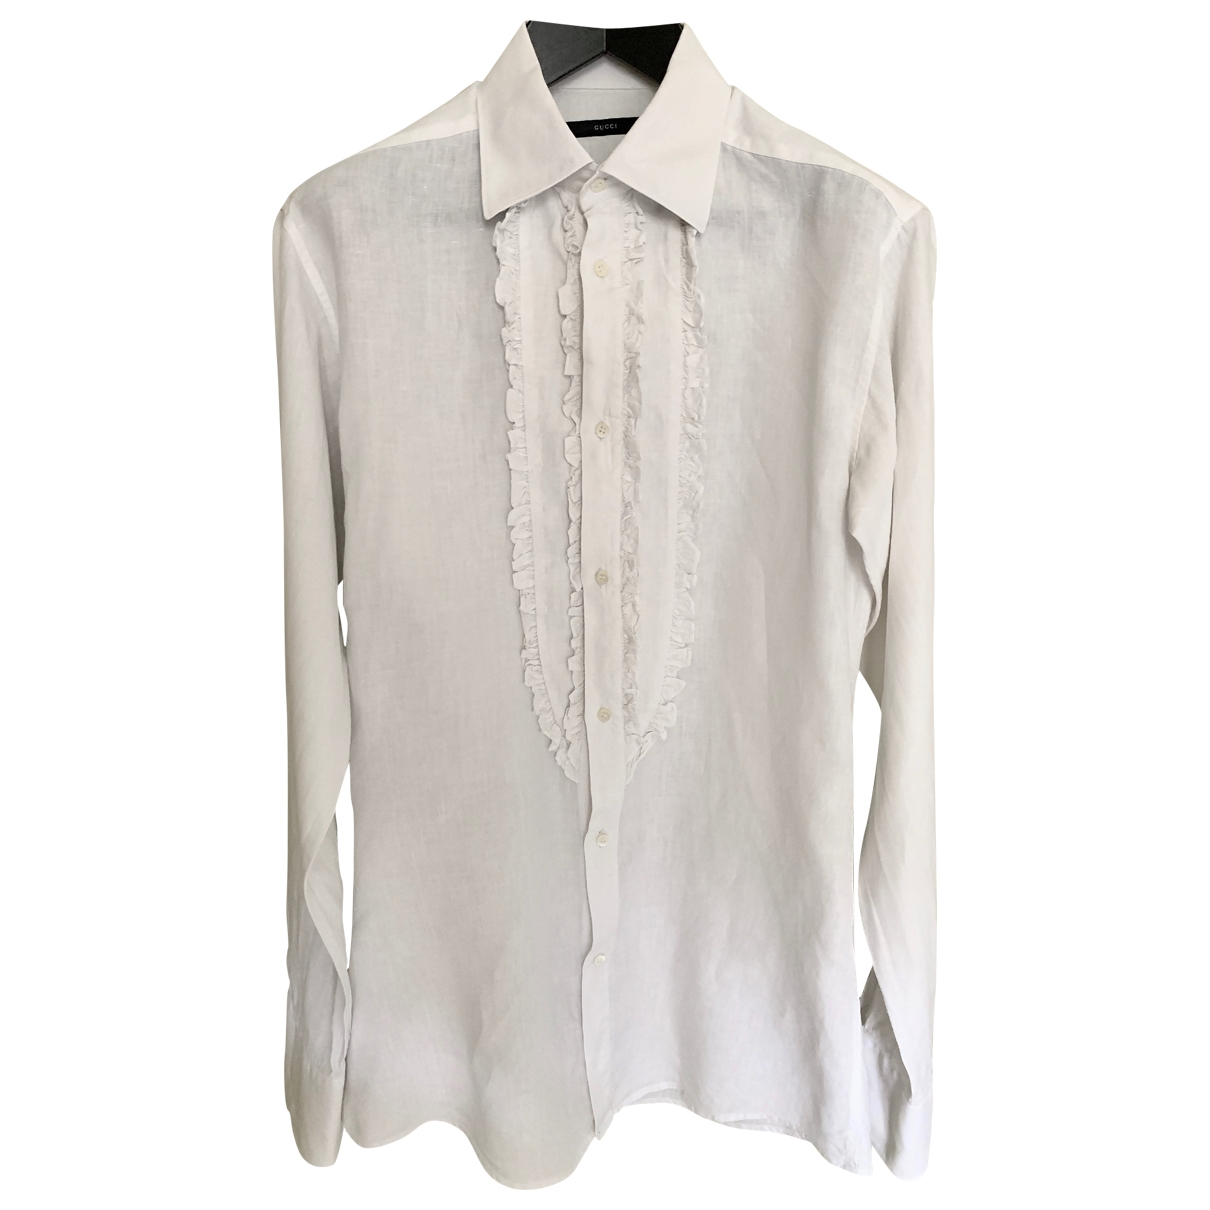 Gucci N White Linen Shirts for Men 39 EU (tour de cou / collar)